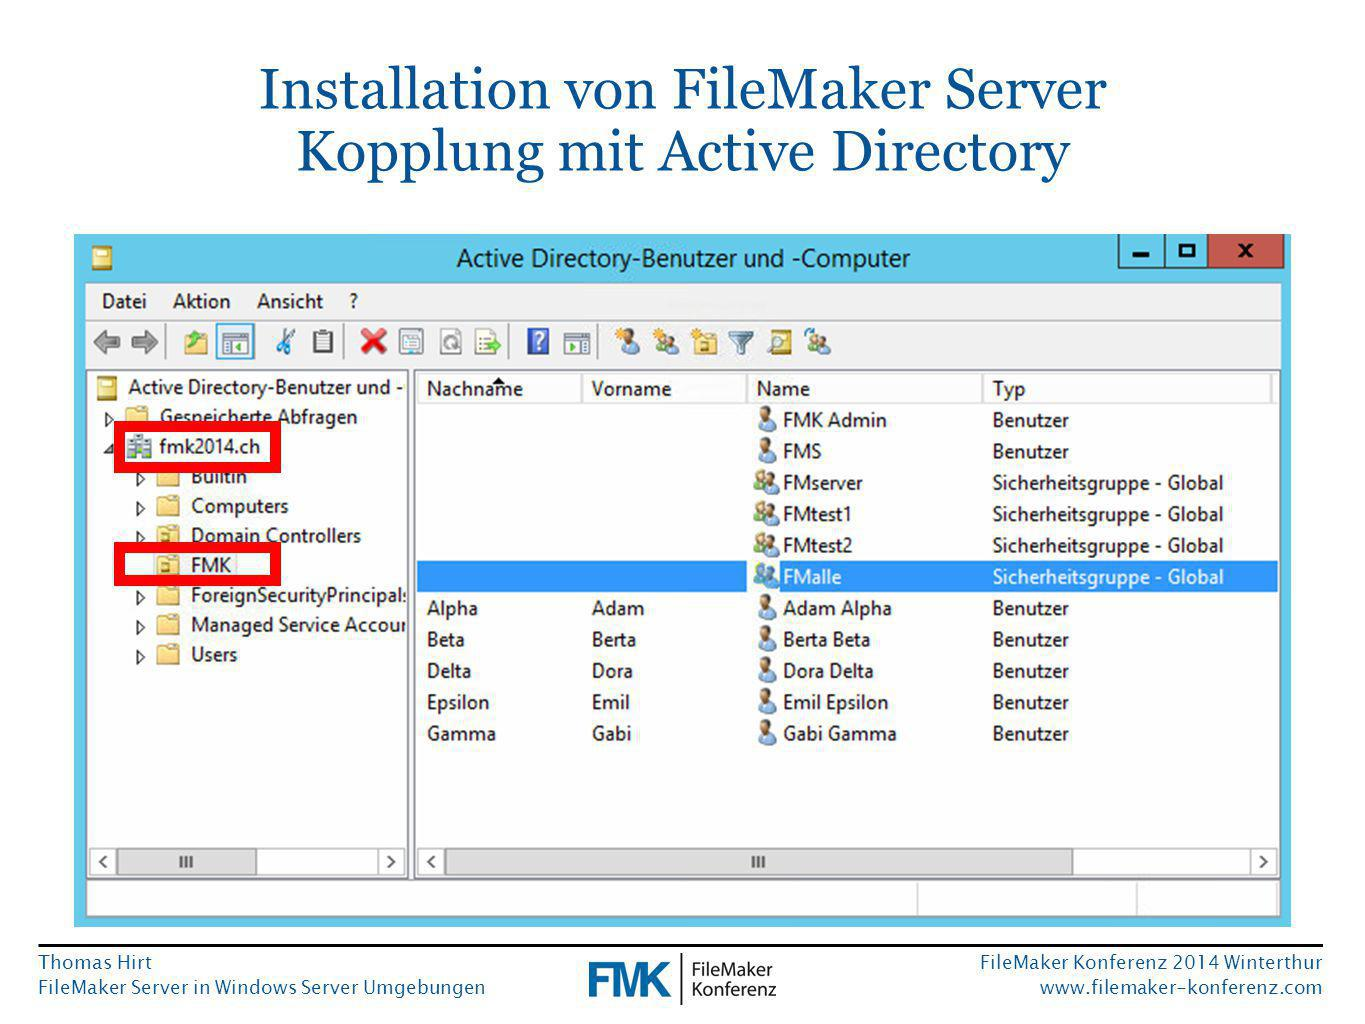 Thomas Hirt FileMaker Server in Windows Server Umgebungen FileMaker Konferenz 2014 Winterthur www.filemaker-konferenz.com Installation von FileMaker Server Kopplung mit Active Directory